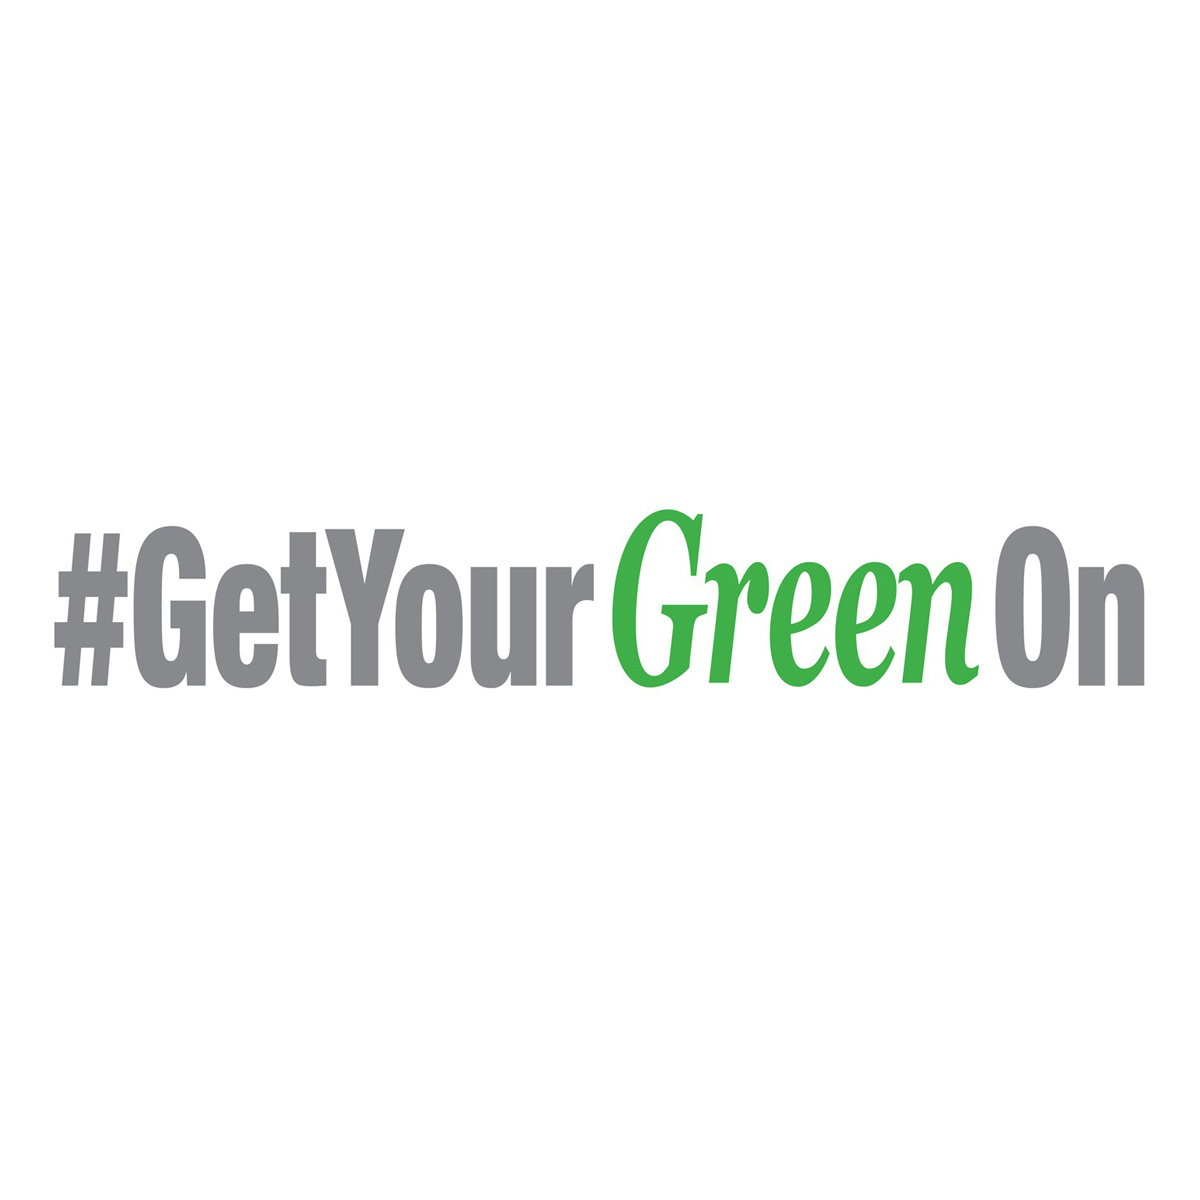 SFC's 2018 Get Your Green On Competition Now Open for Submissions